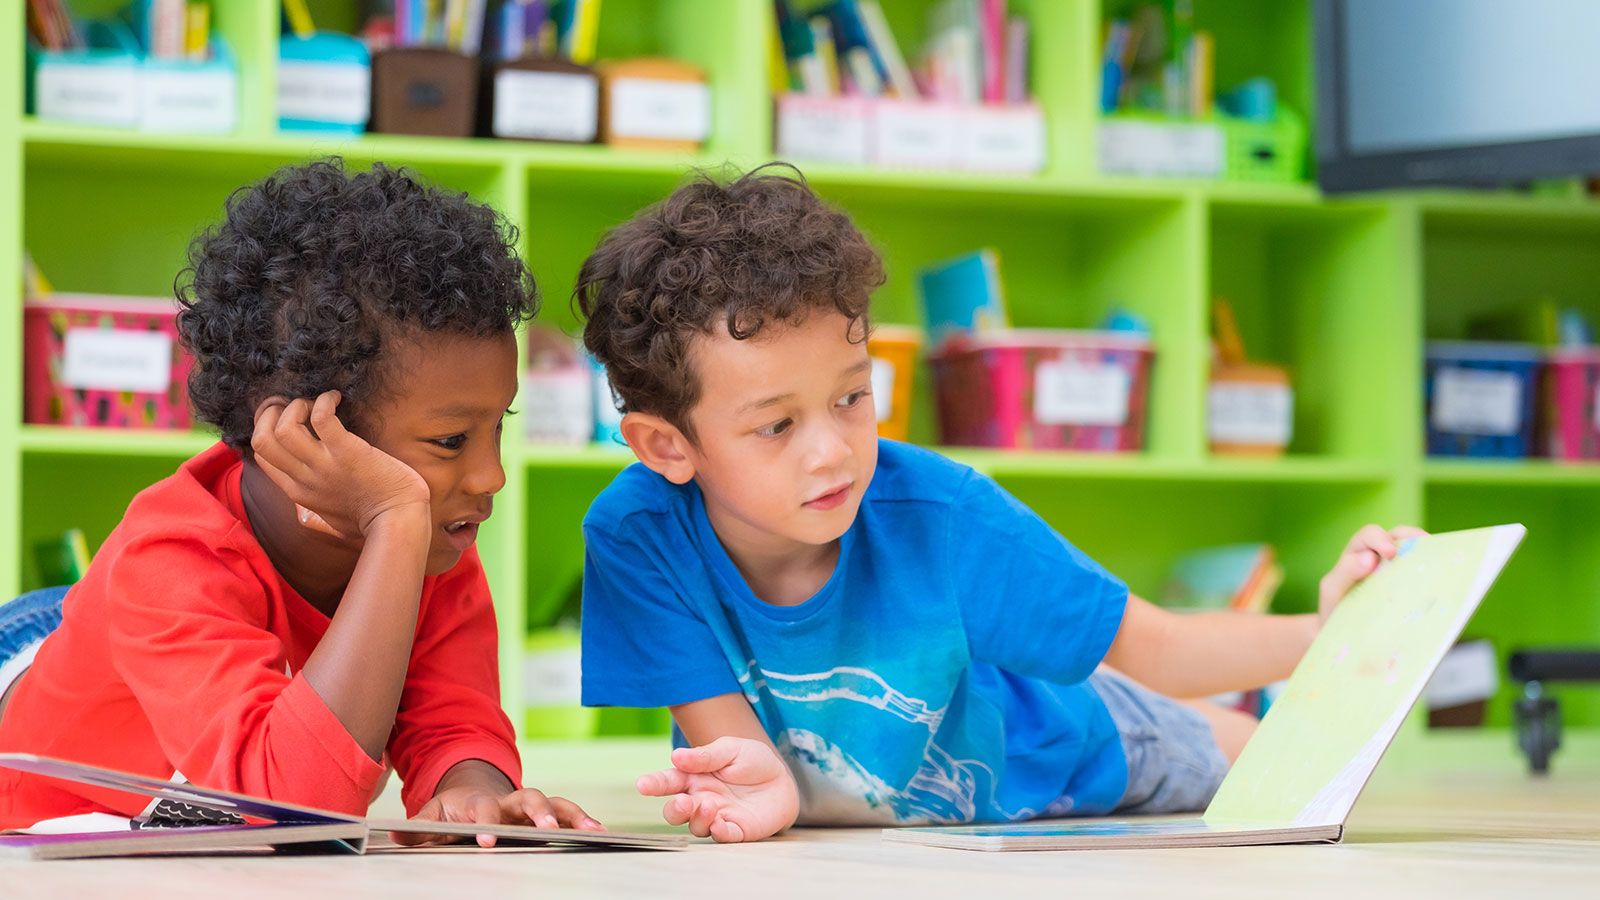 Top Five Ways to Promote Ally Behavior in Students